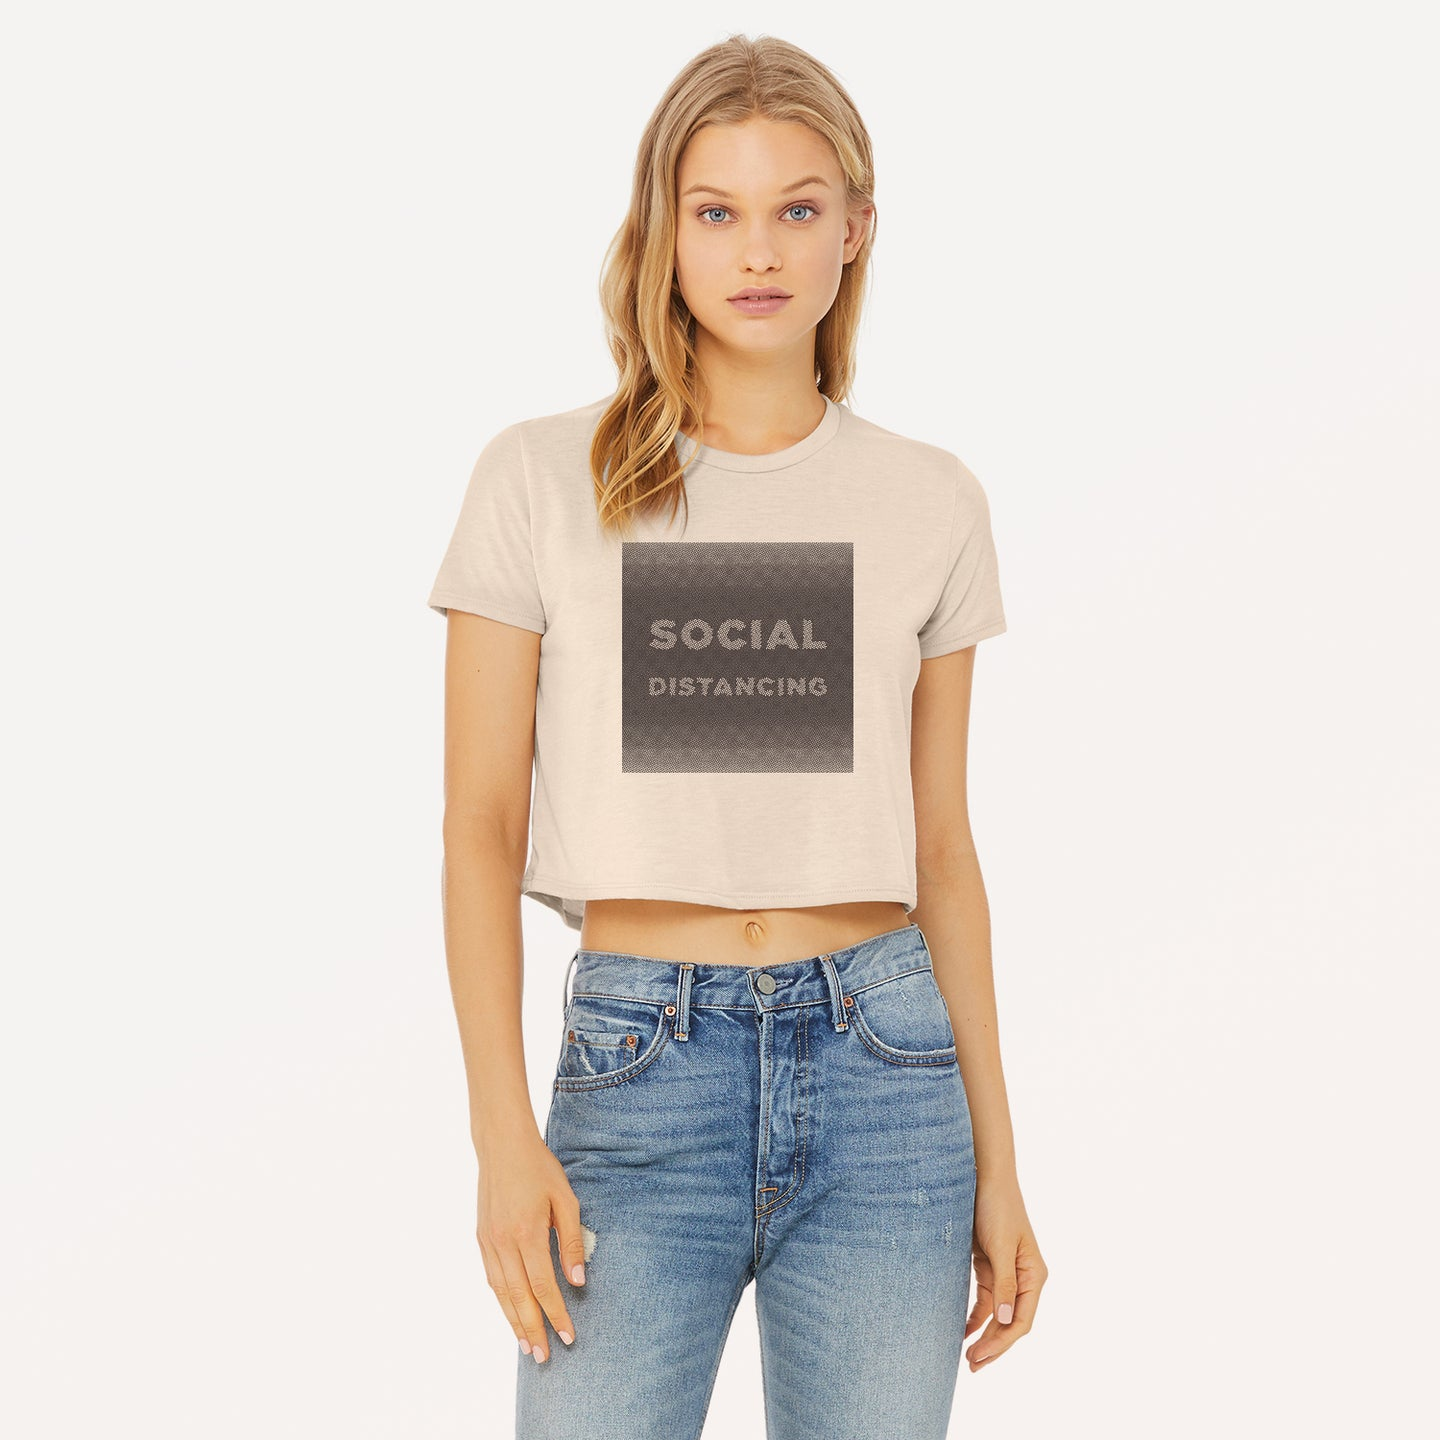 Social Distancing graphic screenprinted on a heather dust women's flowy cropped t-shirt.